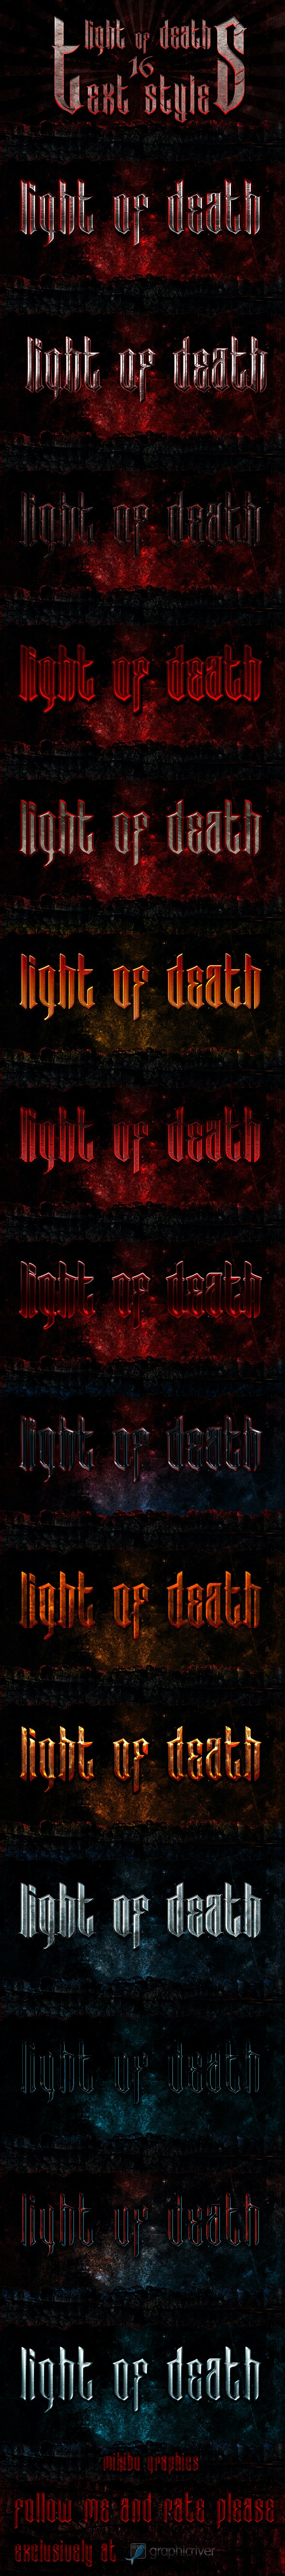 Light Of Death - 16 Photoshop Text Styles - Photoshop Add-ons